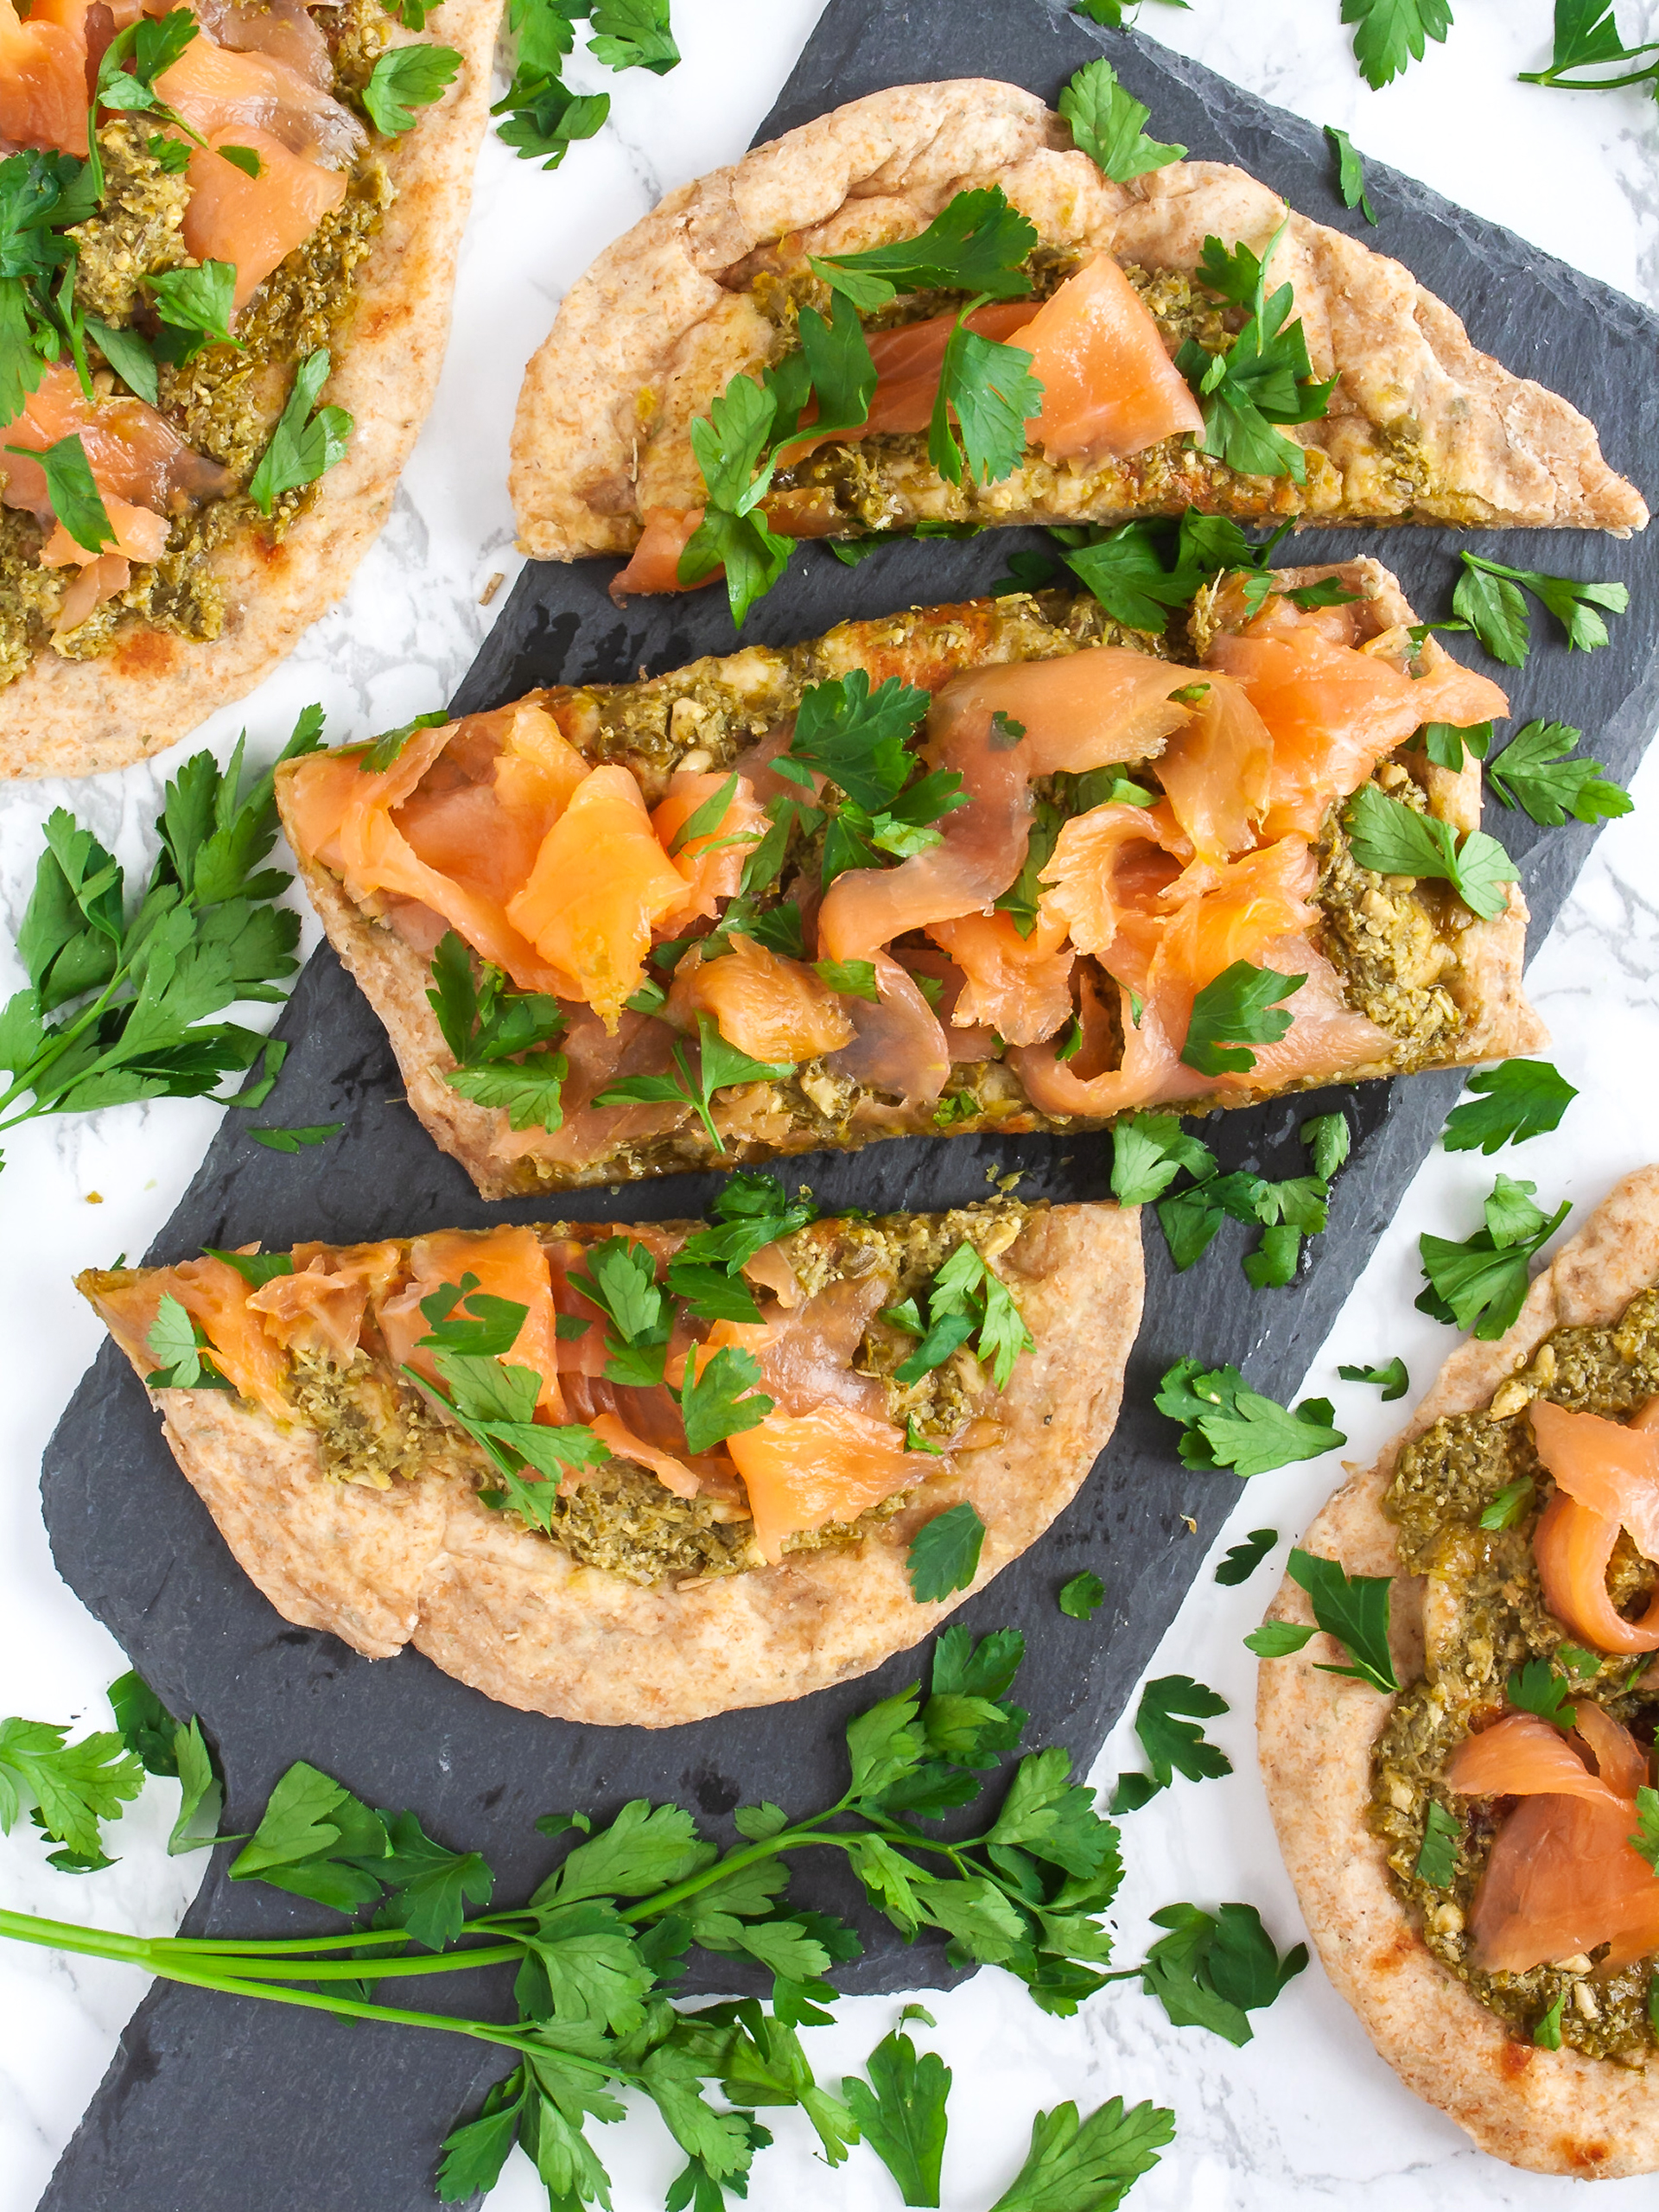 Smoked Salmon and Pesto Wholemeal Flatbread